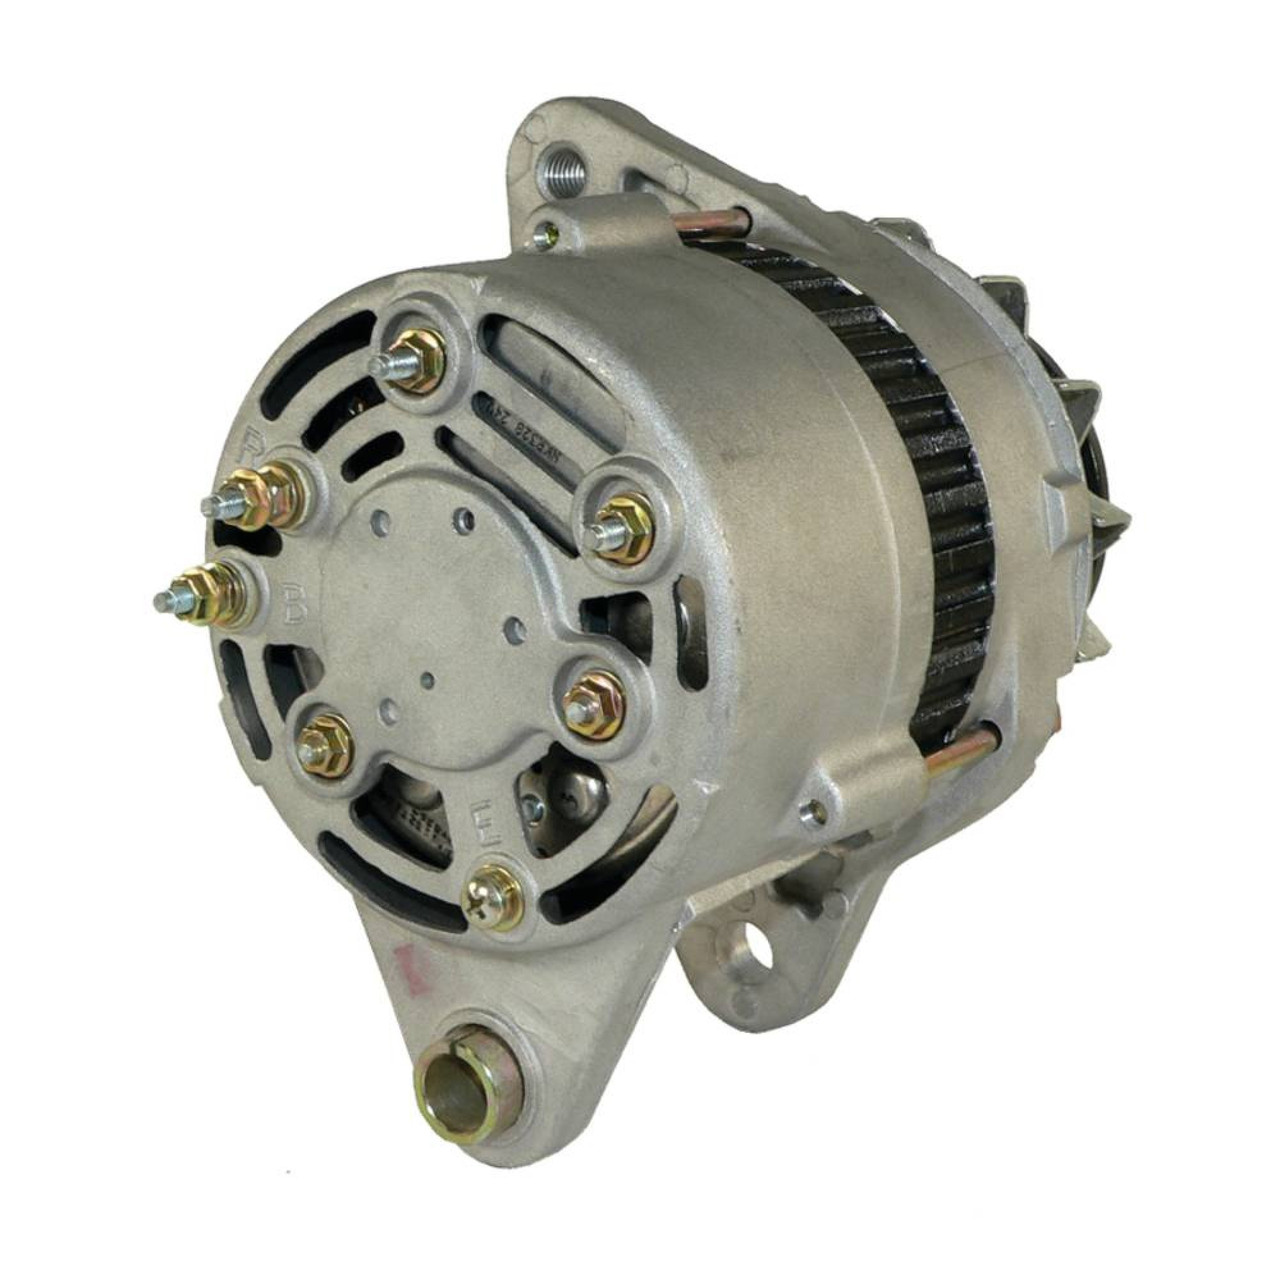 New Alternator For Komatsu 4D94 Engine, 6D105 Engine, 4D105-5 Engine